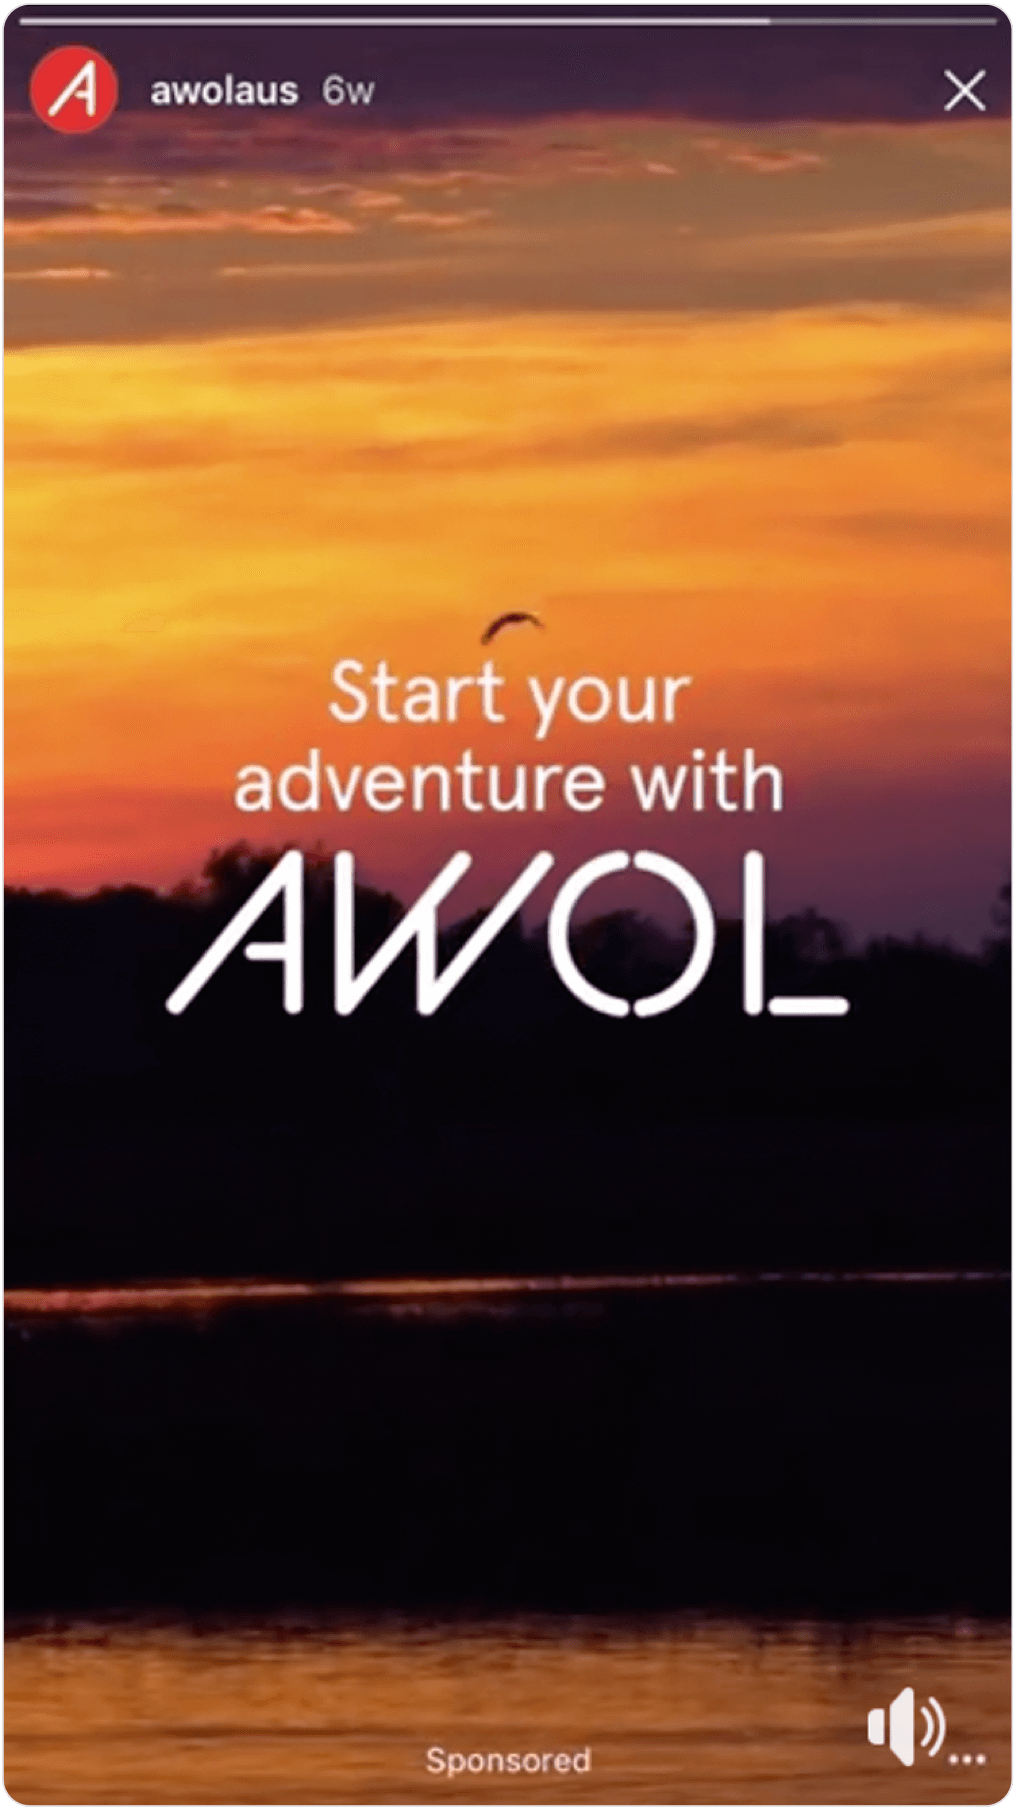 """Instagram Story screenshot of a sunset with the text """"Start your adventure with AWOL"""""""